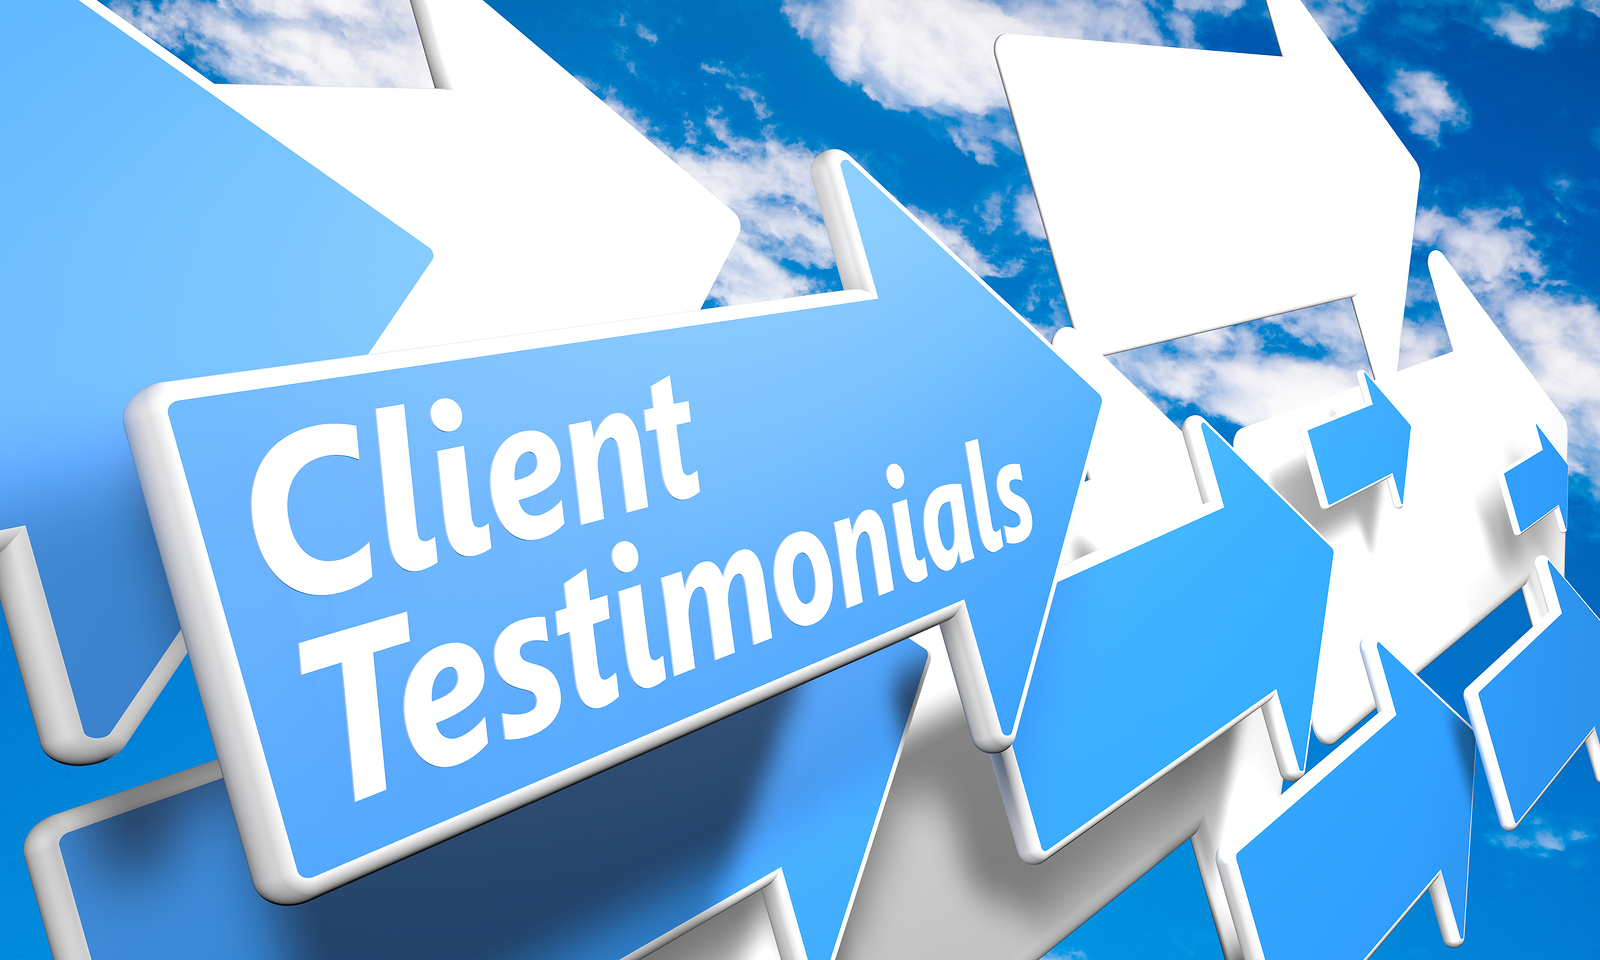 Client Testimonials Are Great for Online Reviews